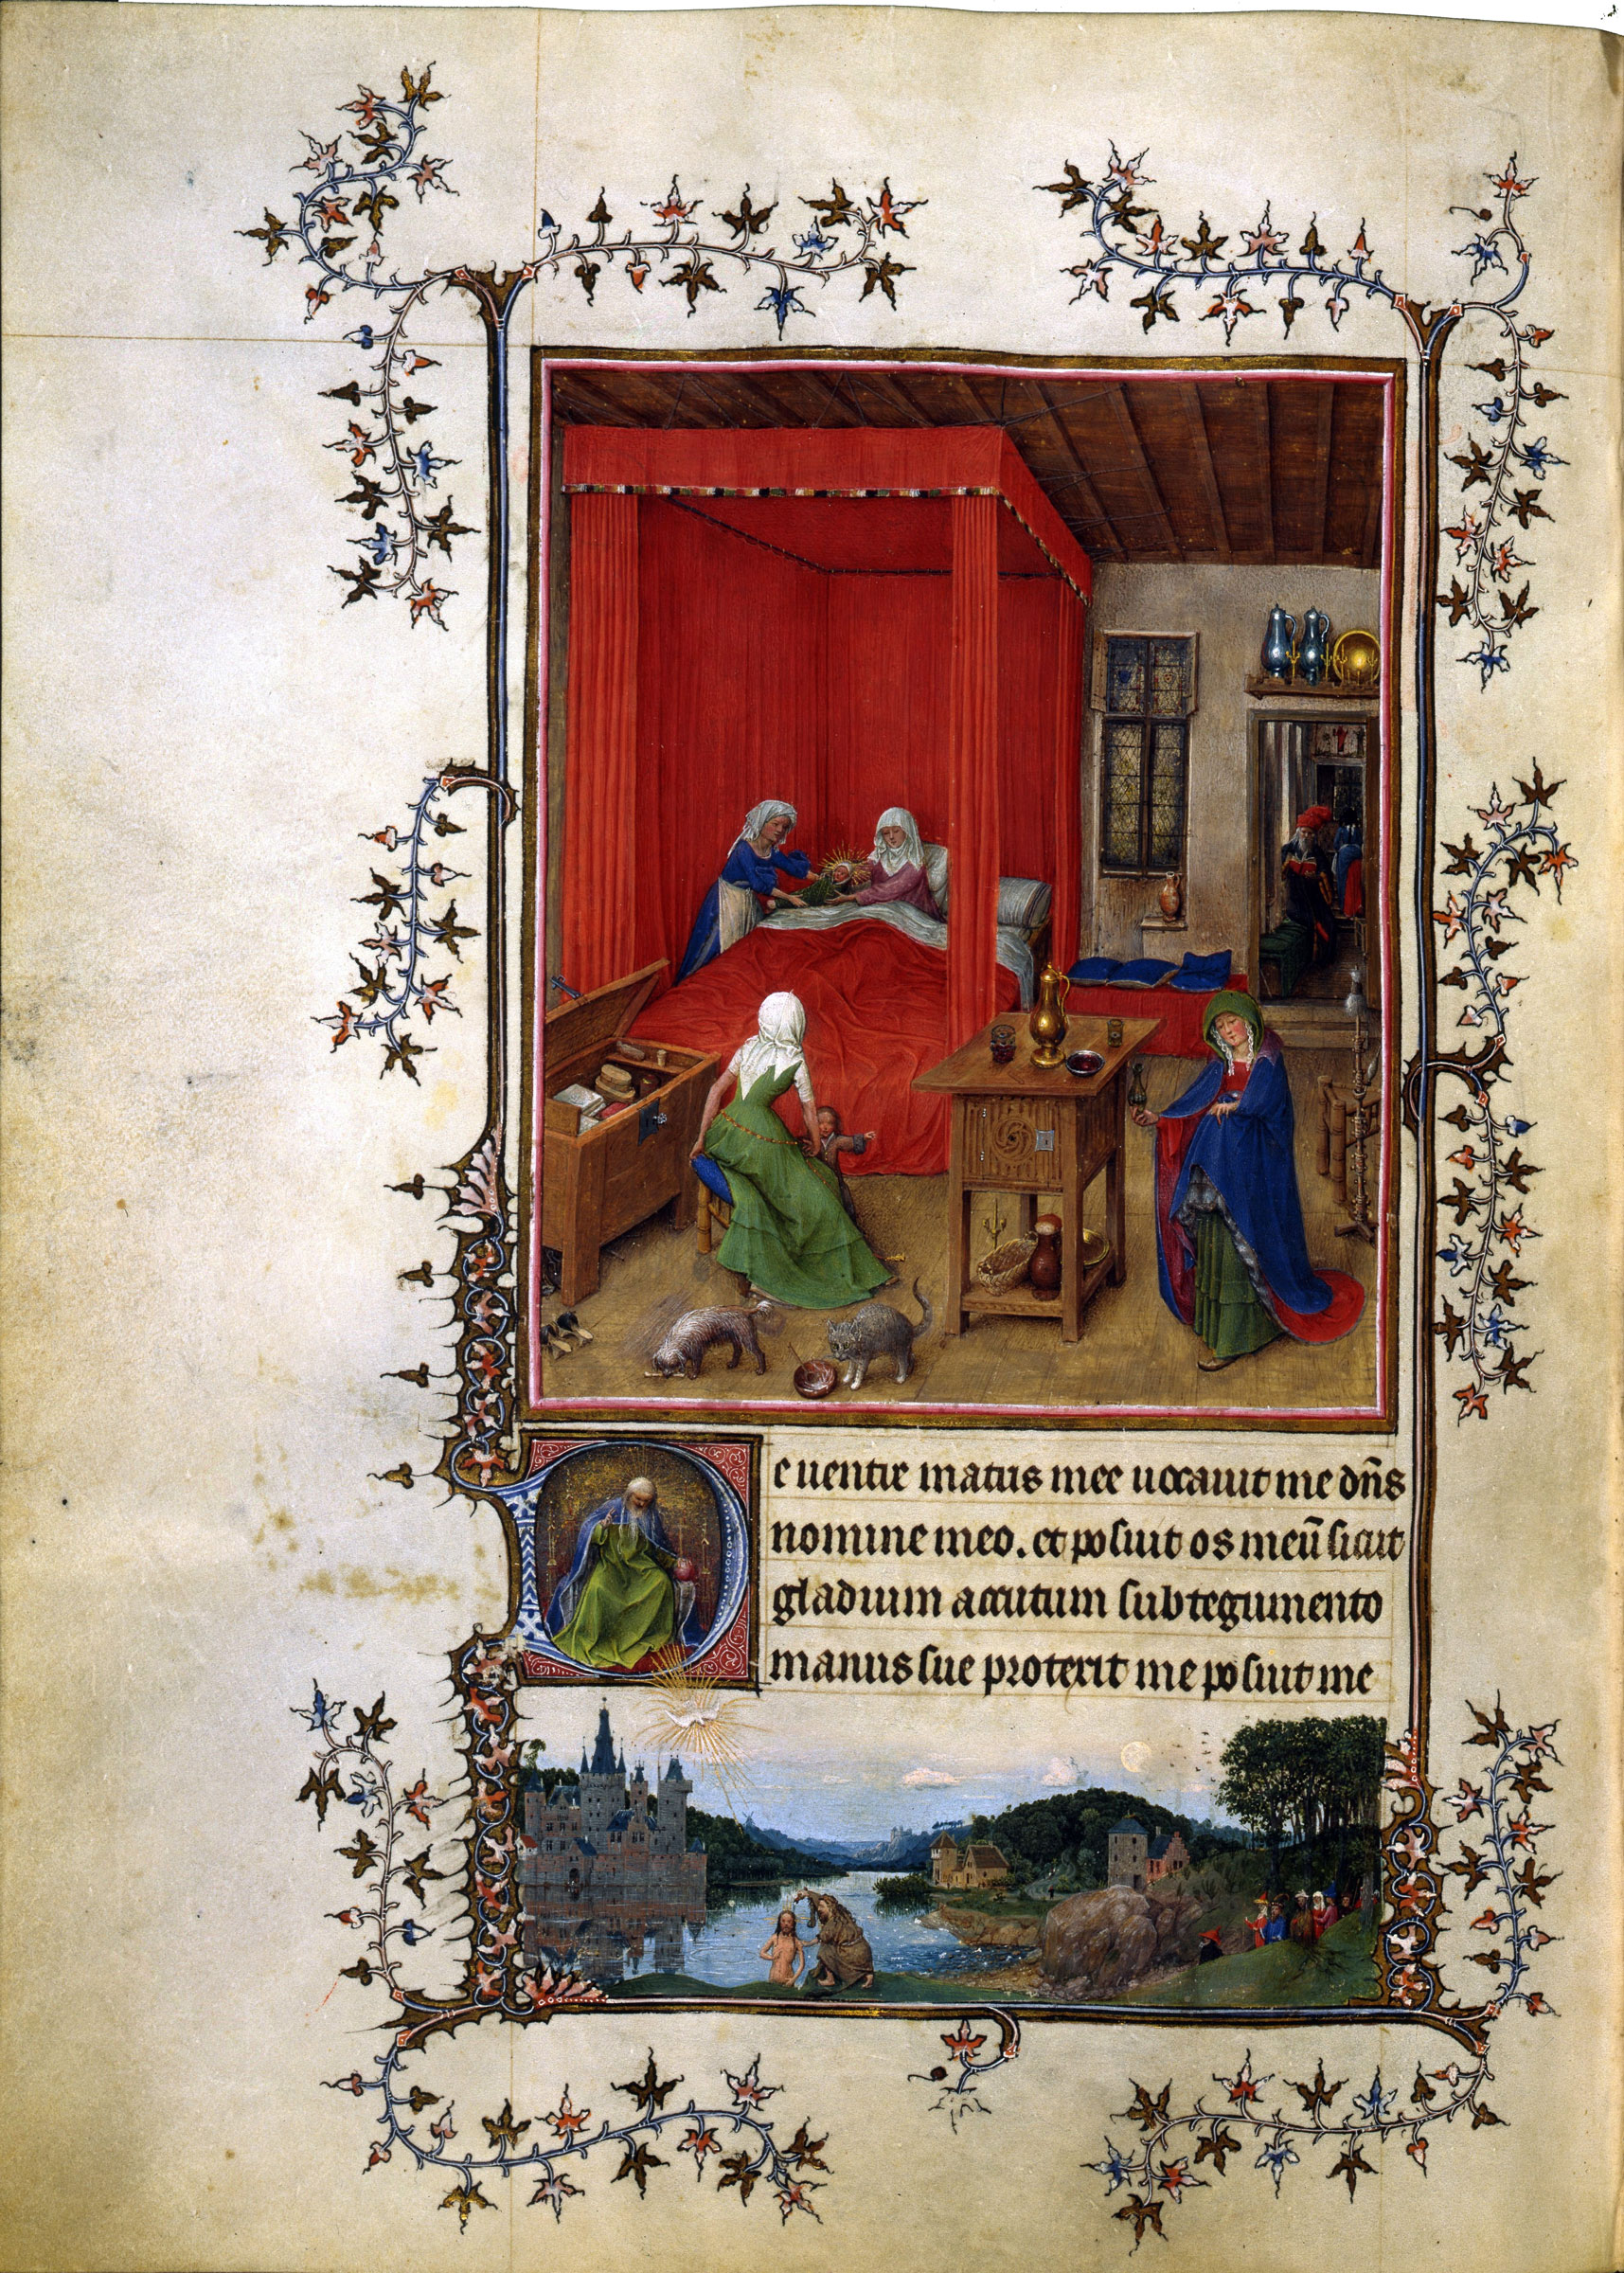 Milan-Turin book of hours, van Eyck